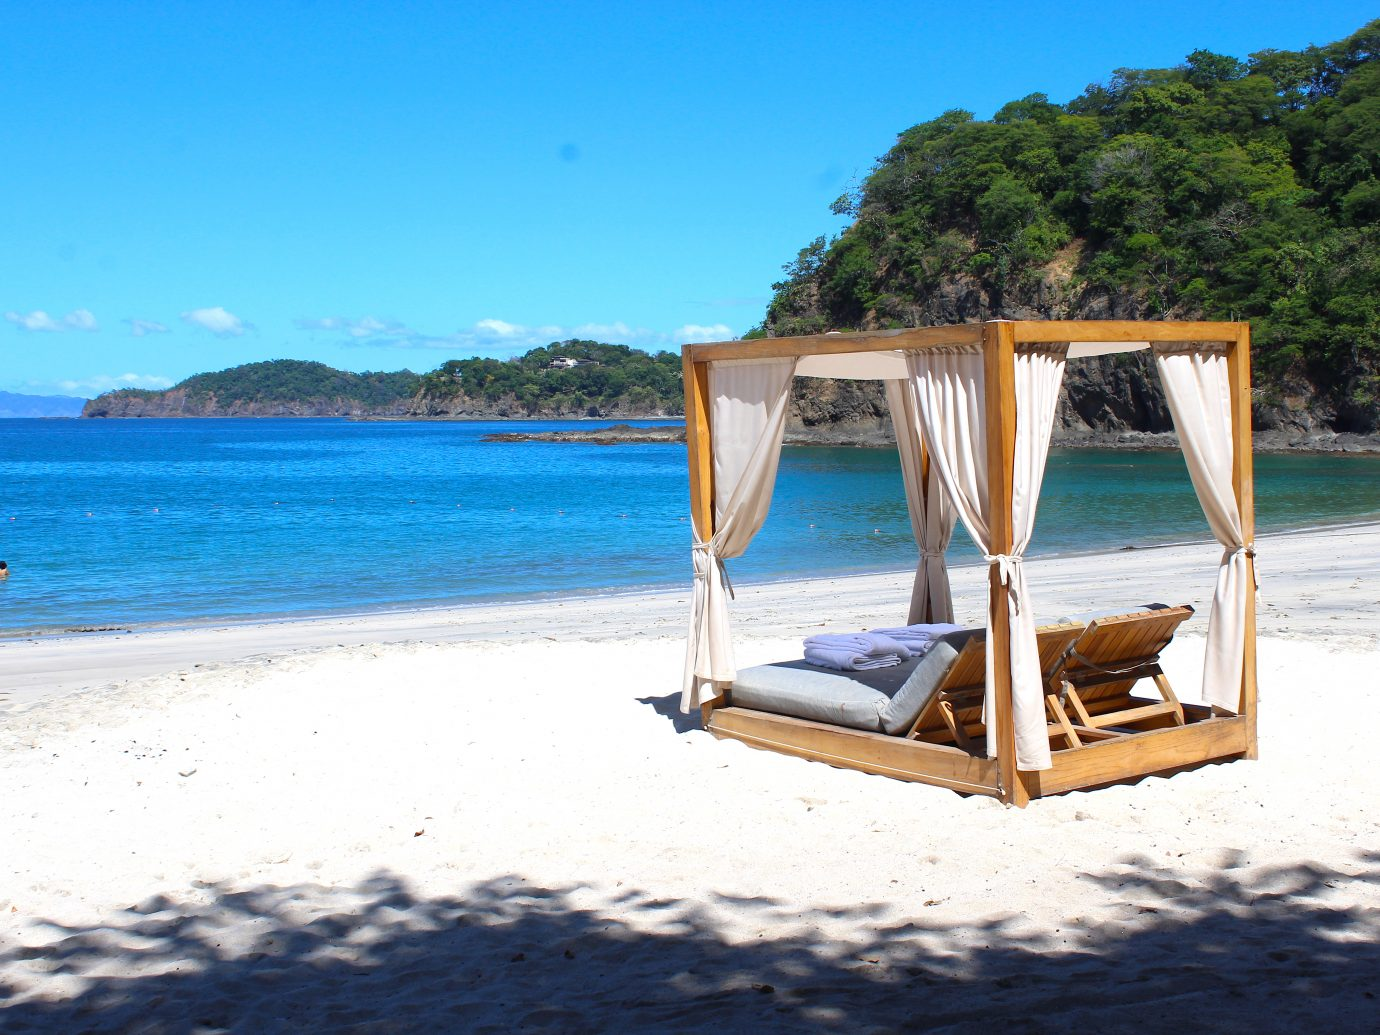 Beach at the Four Seasons resort in Costa Rica